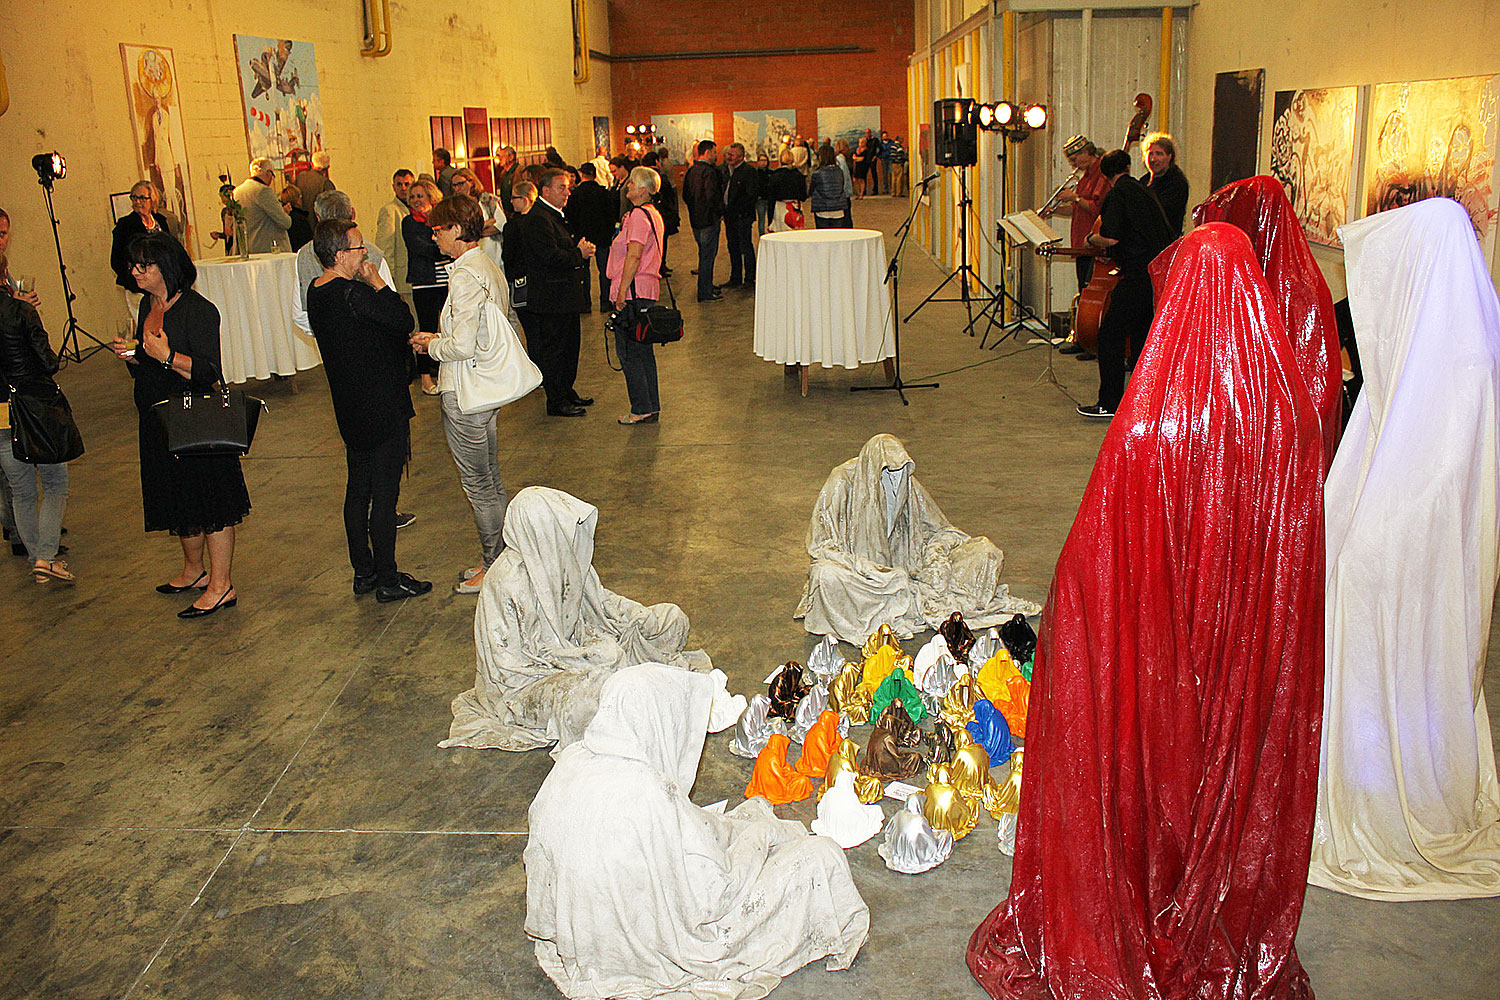 kunst in der fabrik giz-rosegg-koglhof-kunst-und-handel-guardians-waechter-manfred-kielnhofer-contemporary-art-arts-sculpture-photography-painting-1638